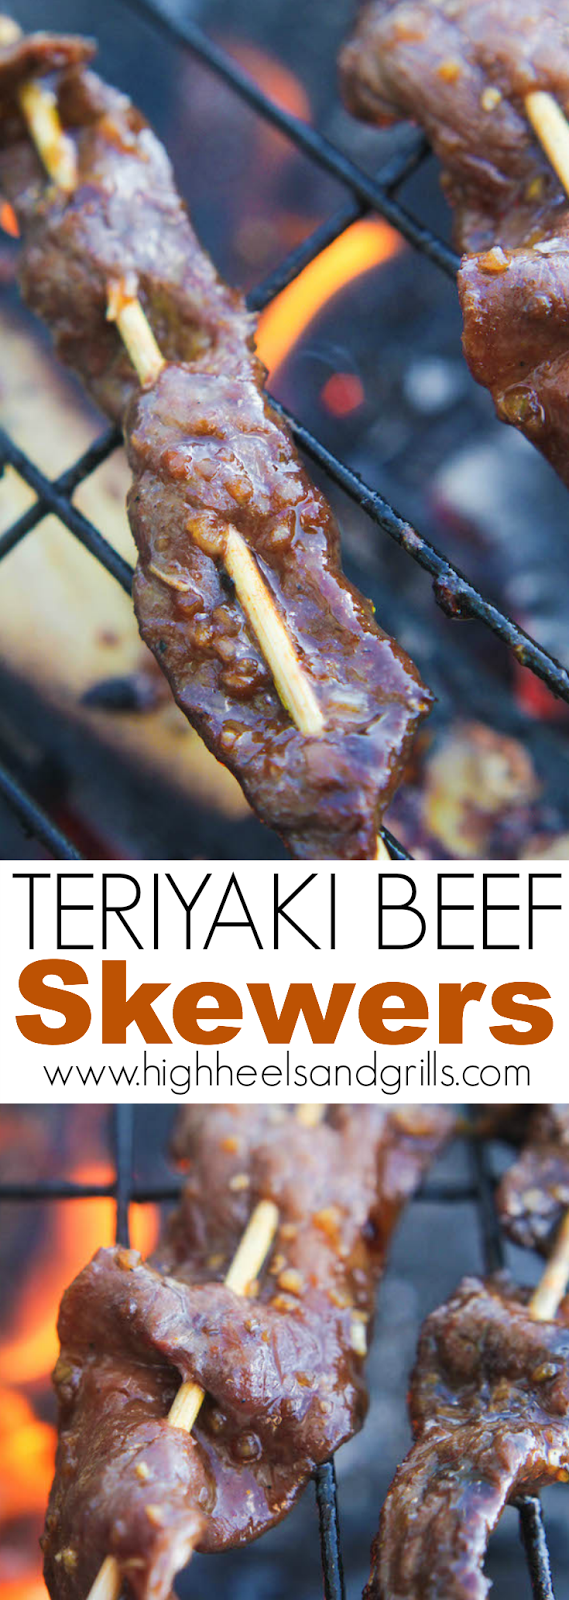 Photo of Teriyaki beef skewers – high heels and grills